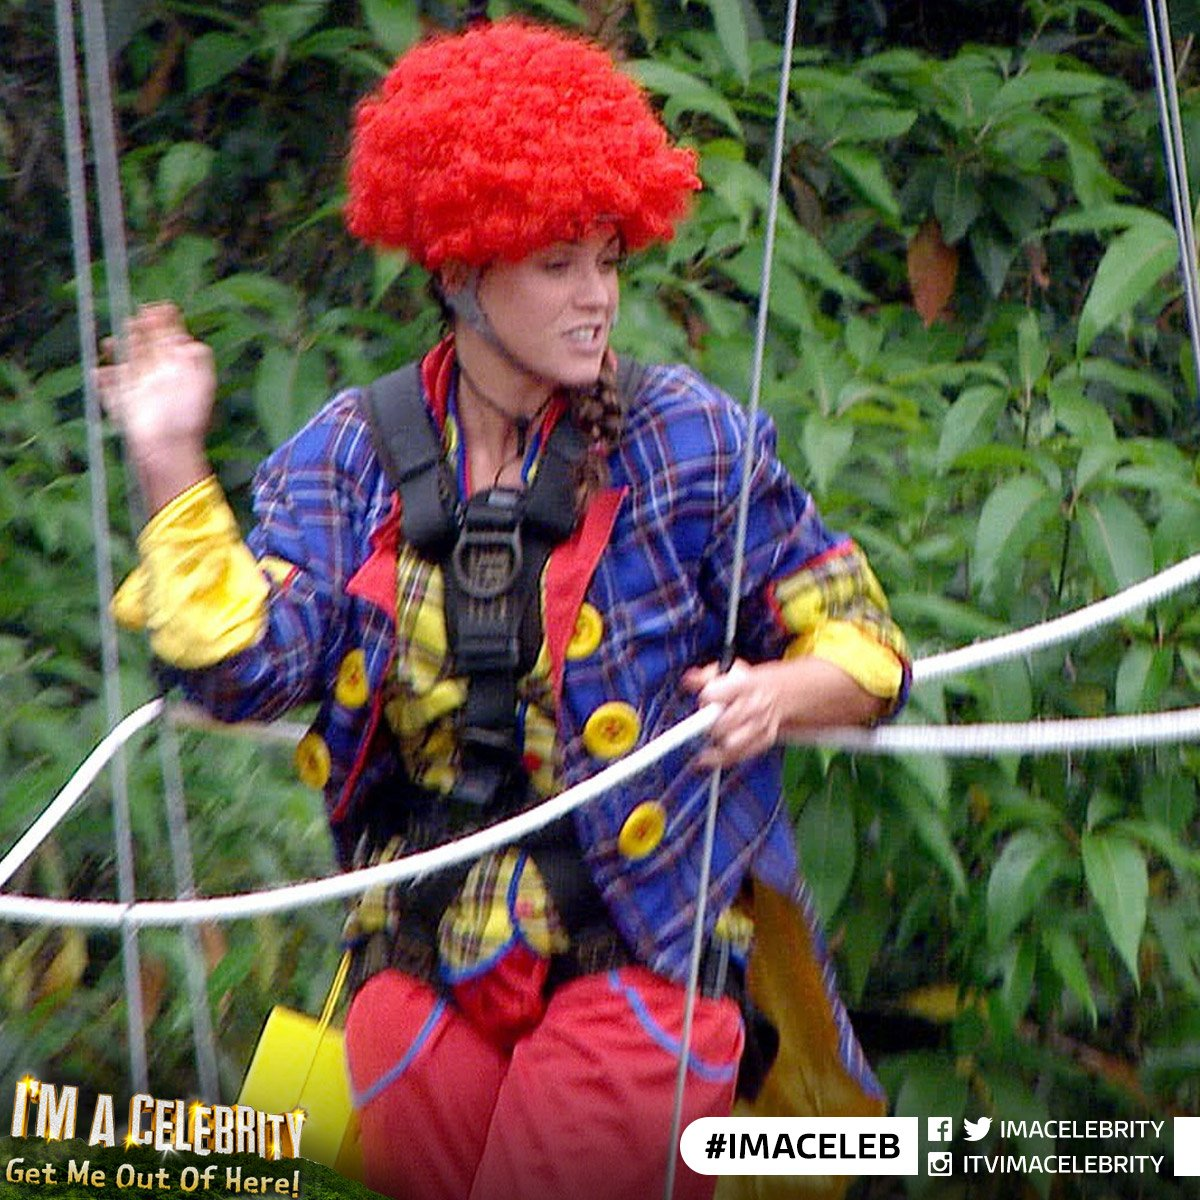 I'm a Celebrity 2015 – Hundreds of complaints to OfCom about 'cruelty to animals' in Ferne's Bushtucker trial